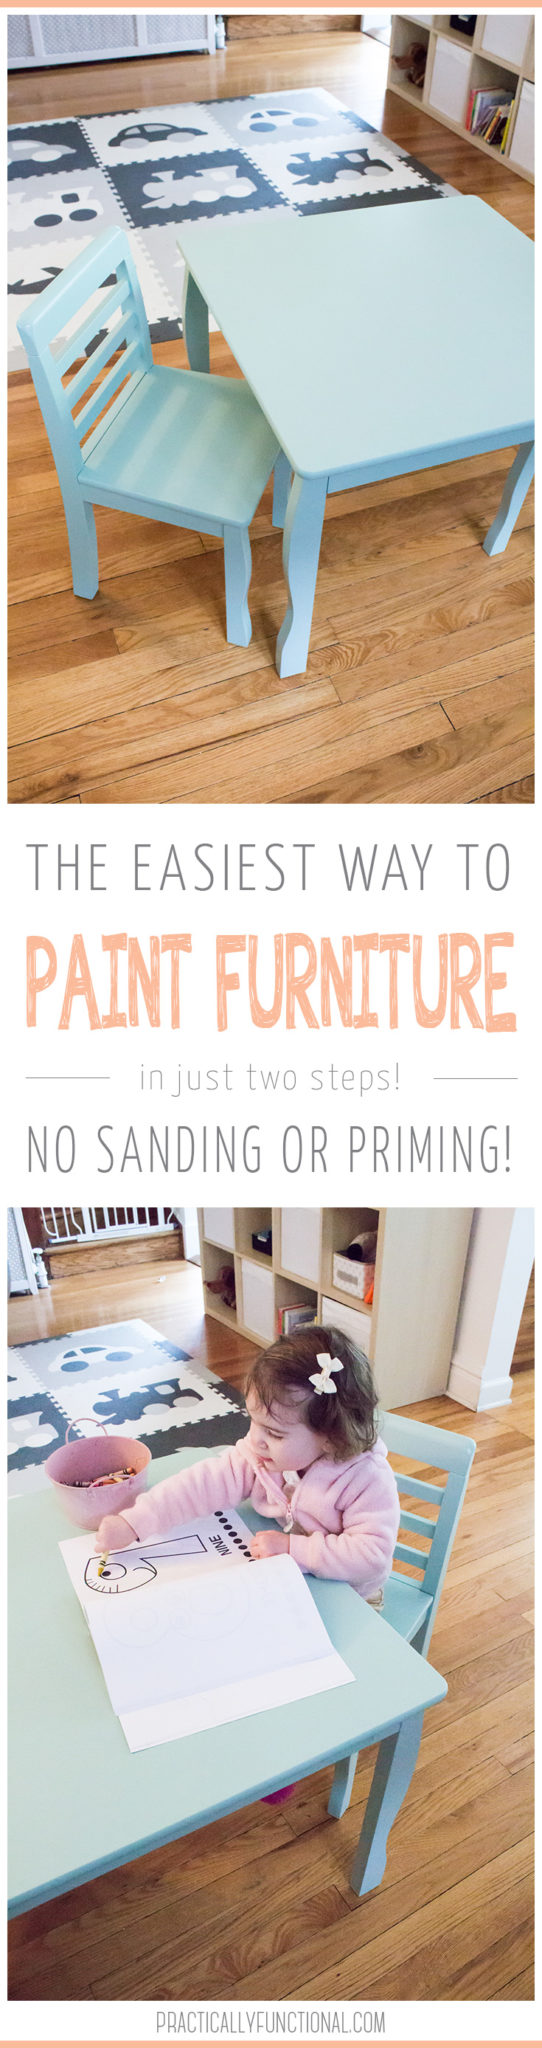 How to paint furniture with any paint, no sanding or priming required